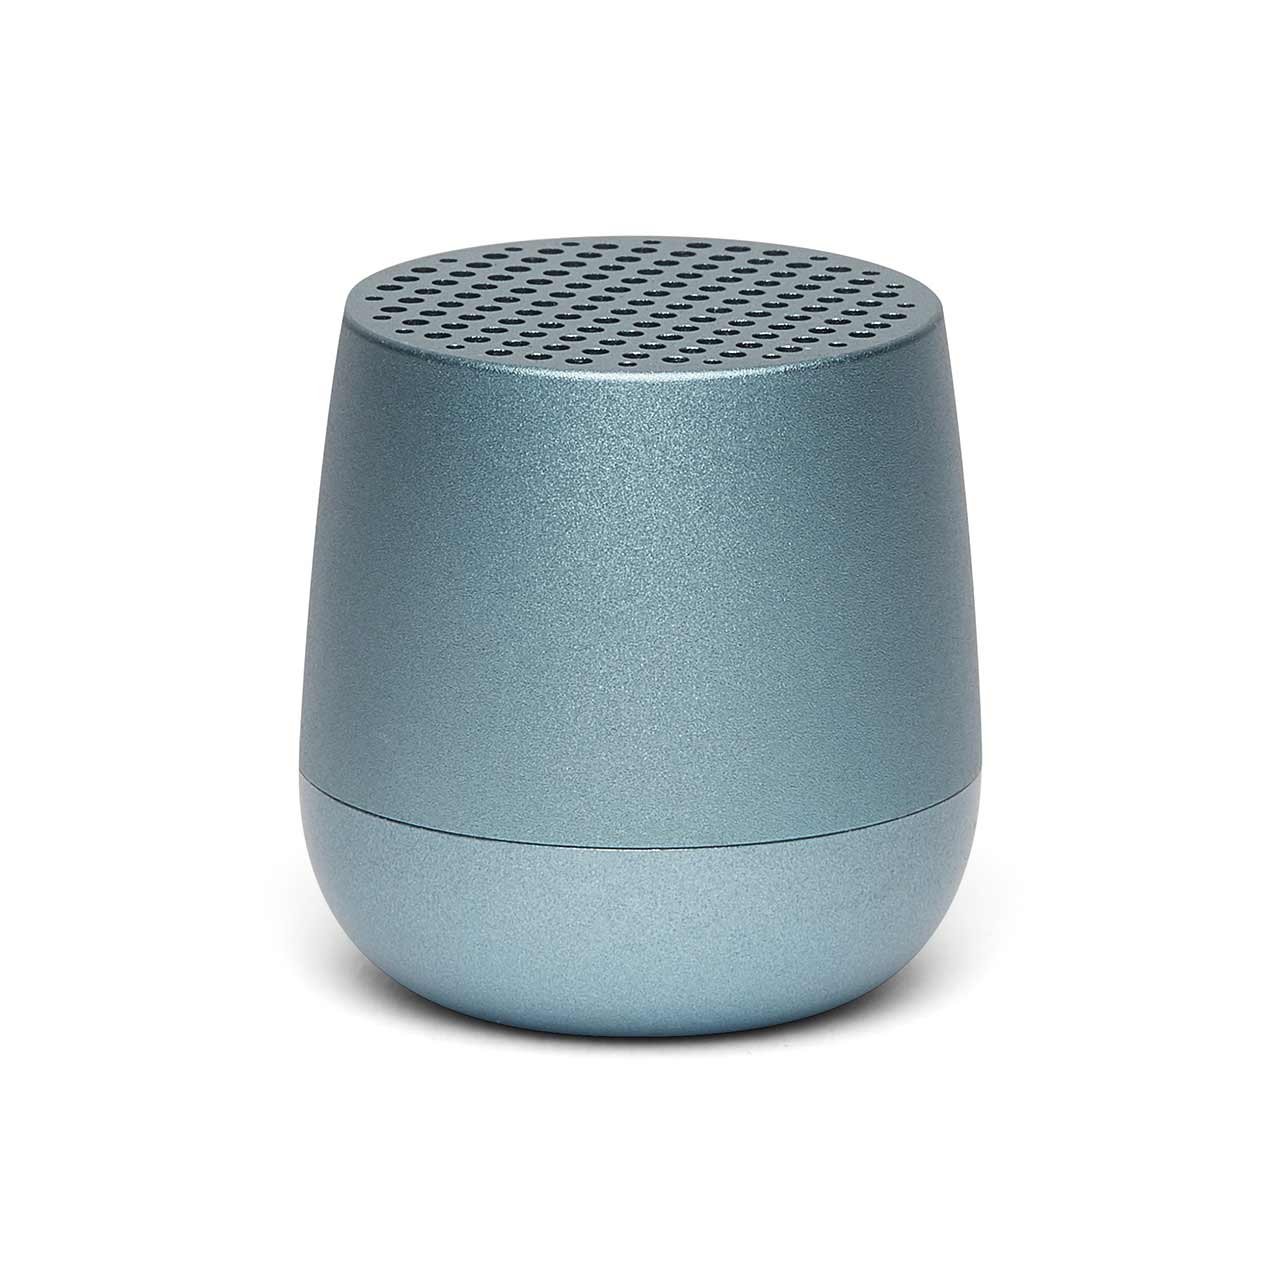 LEXON Mino Speaker LA113TLB Light Blue | The Design Gift Shop